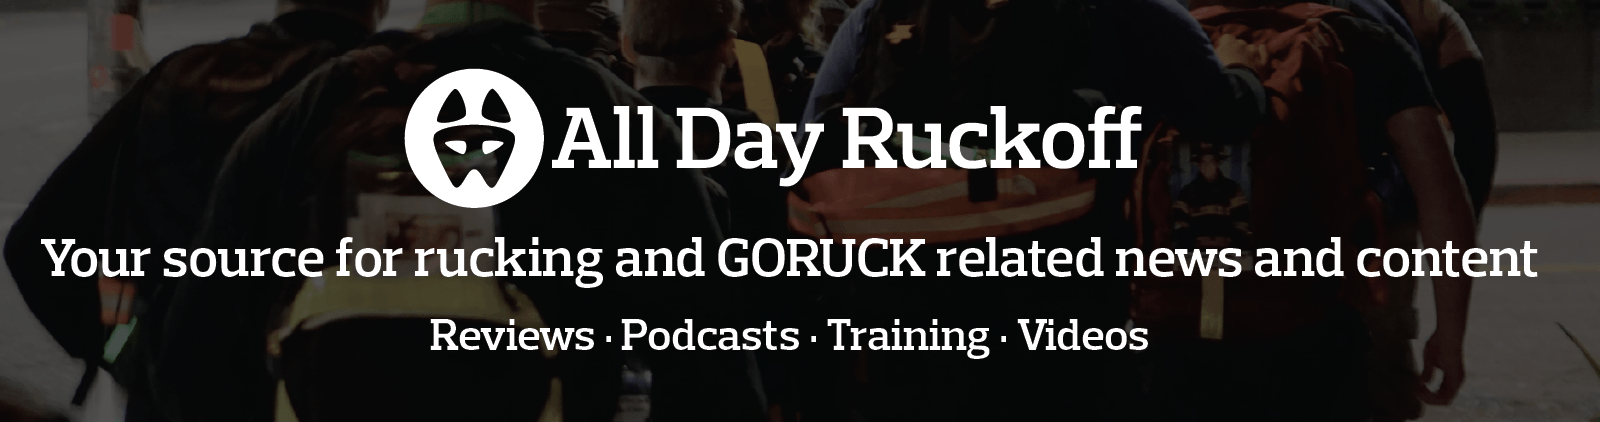 All Day Ruckoff: Your source for rucking and GORUCK related content